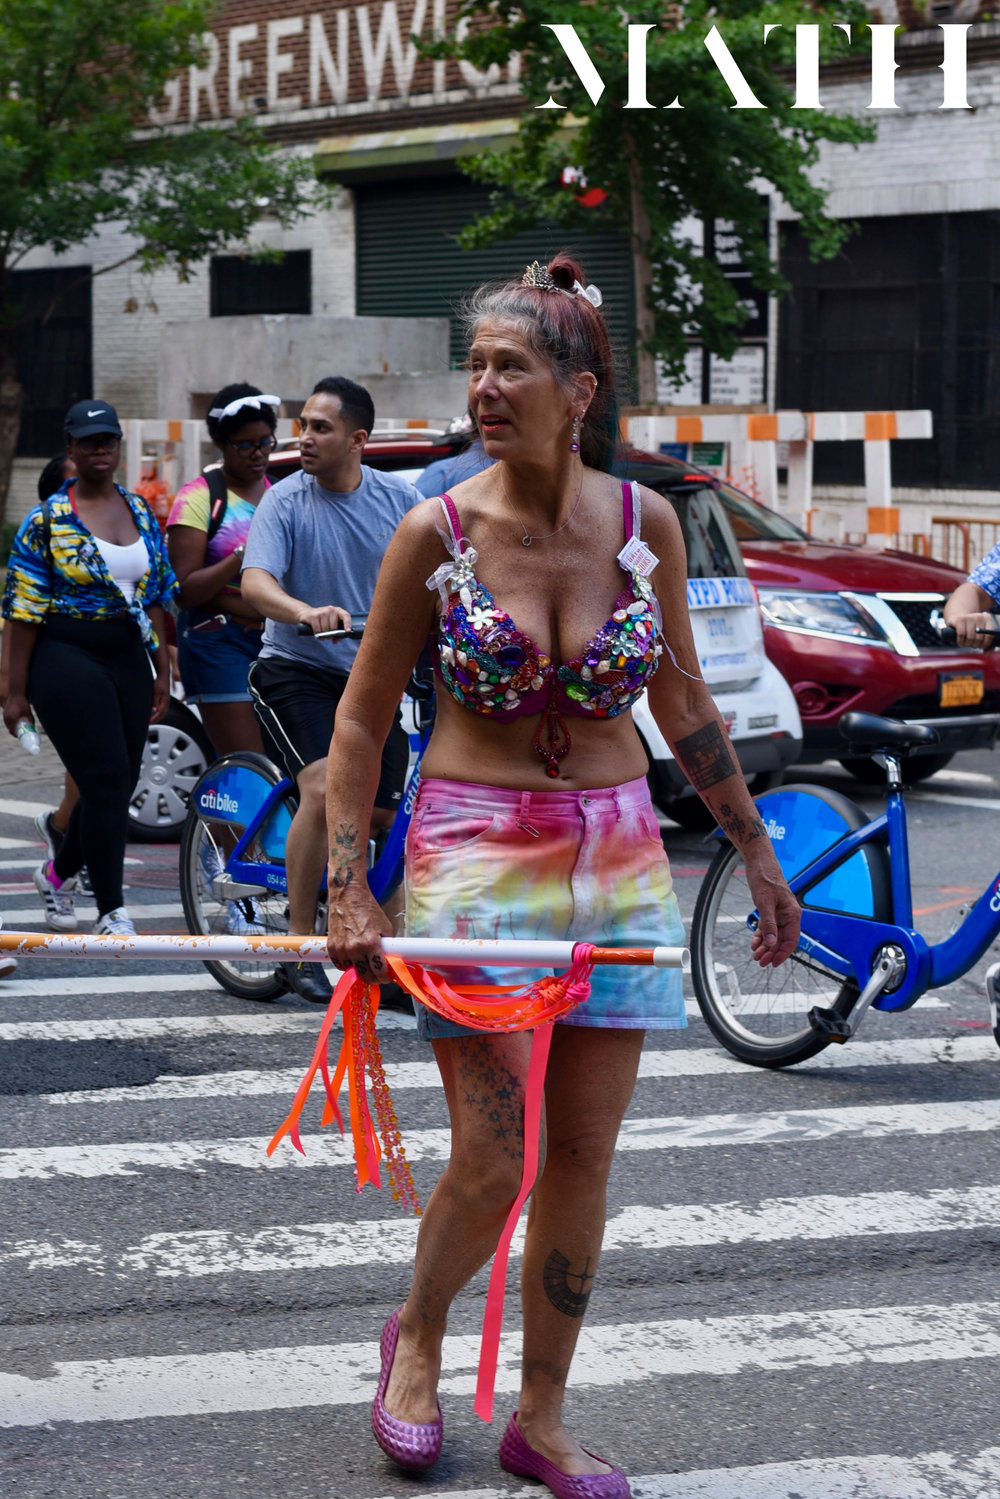 NYC Pride_Ginger Hollander 16.jpg